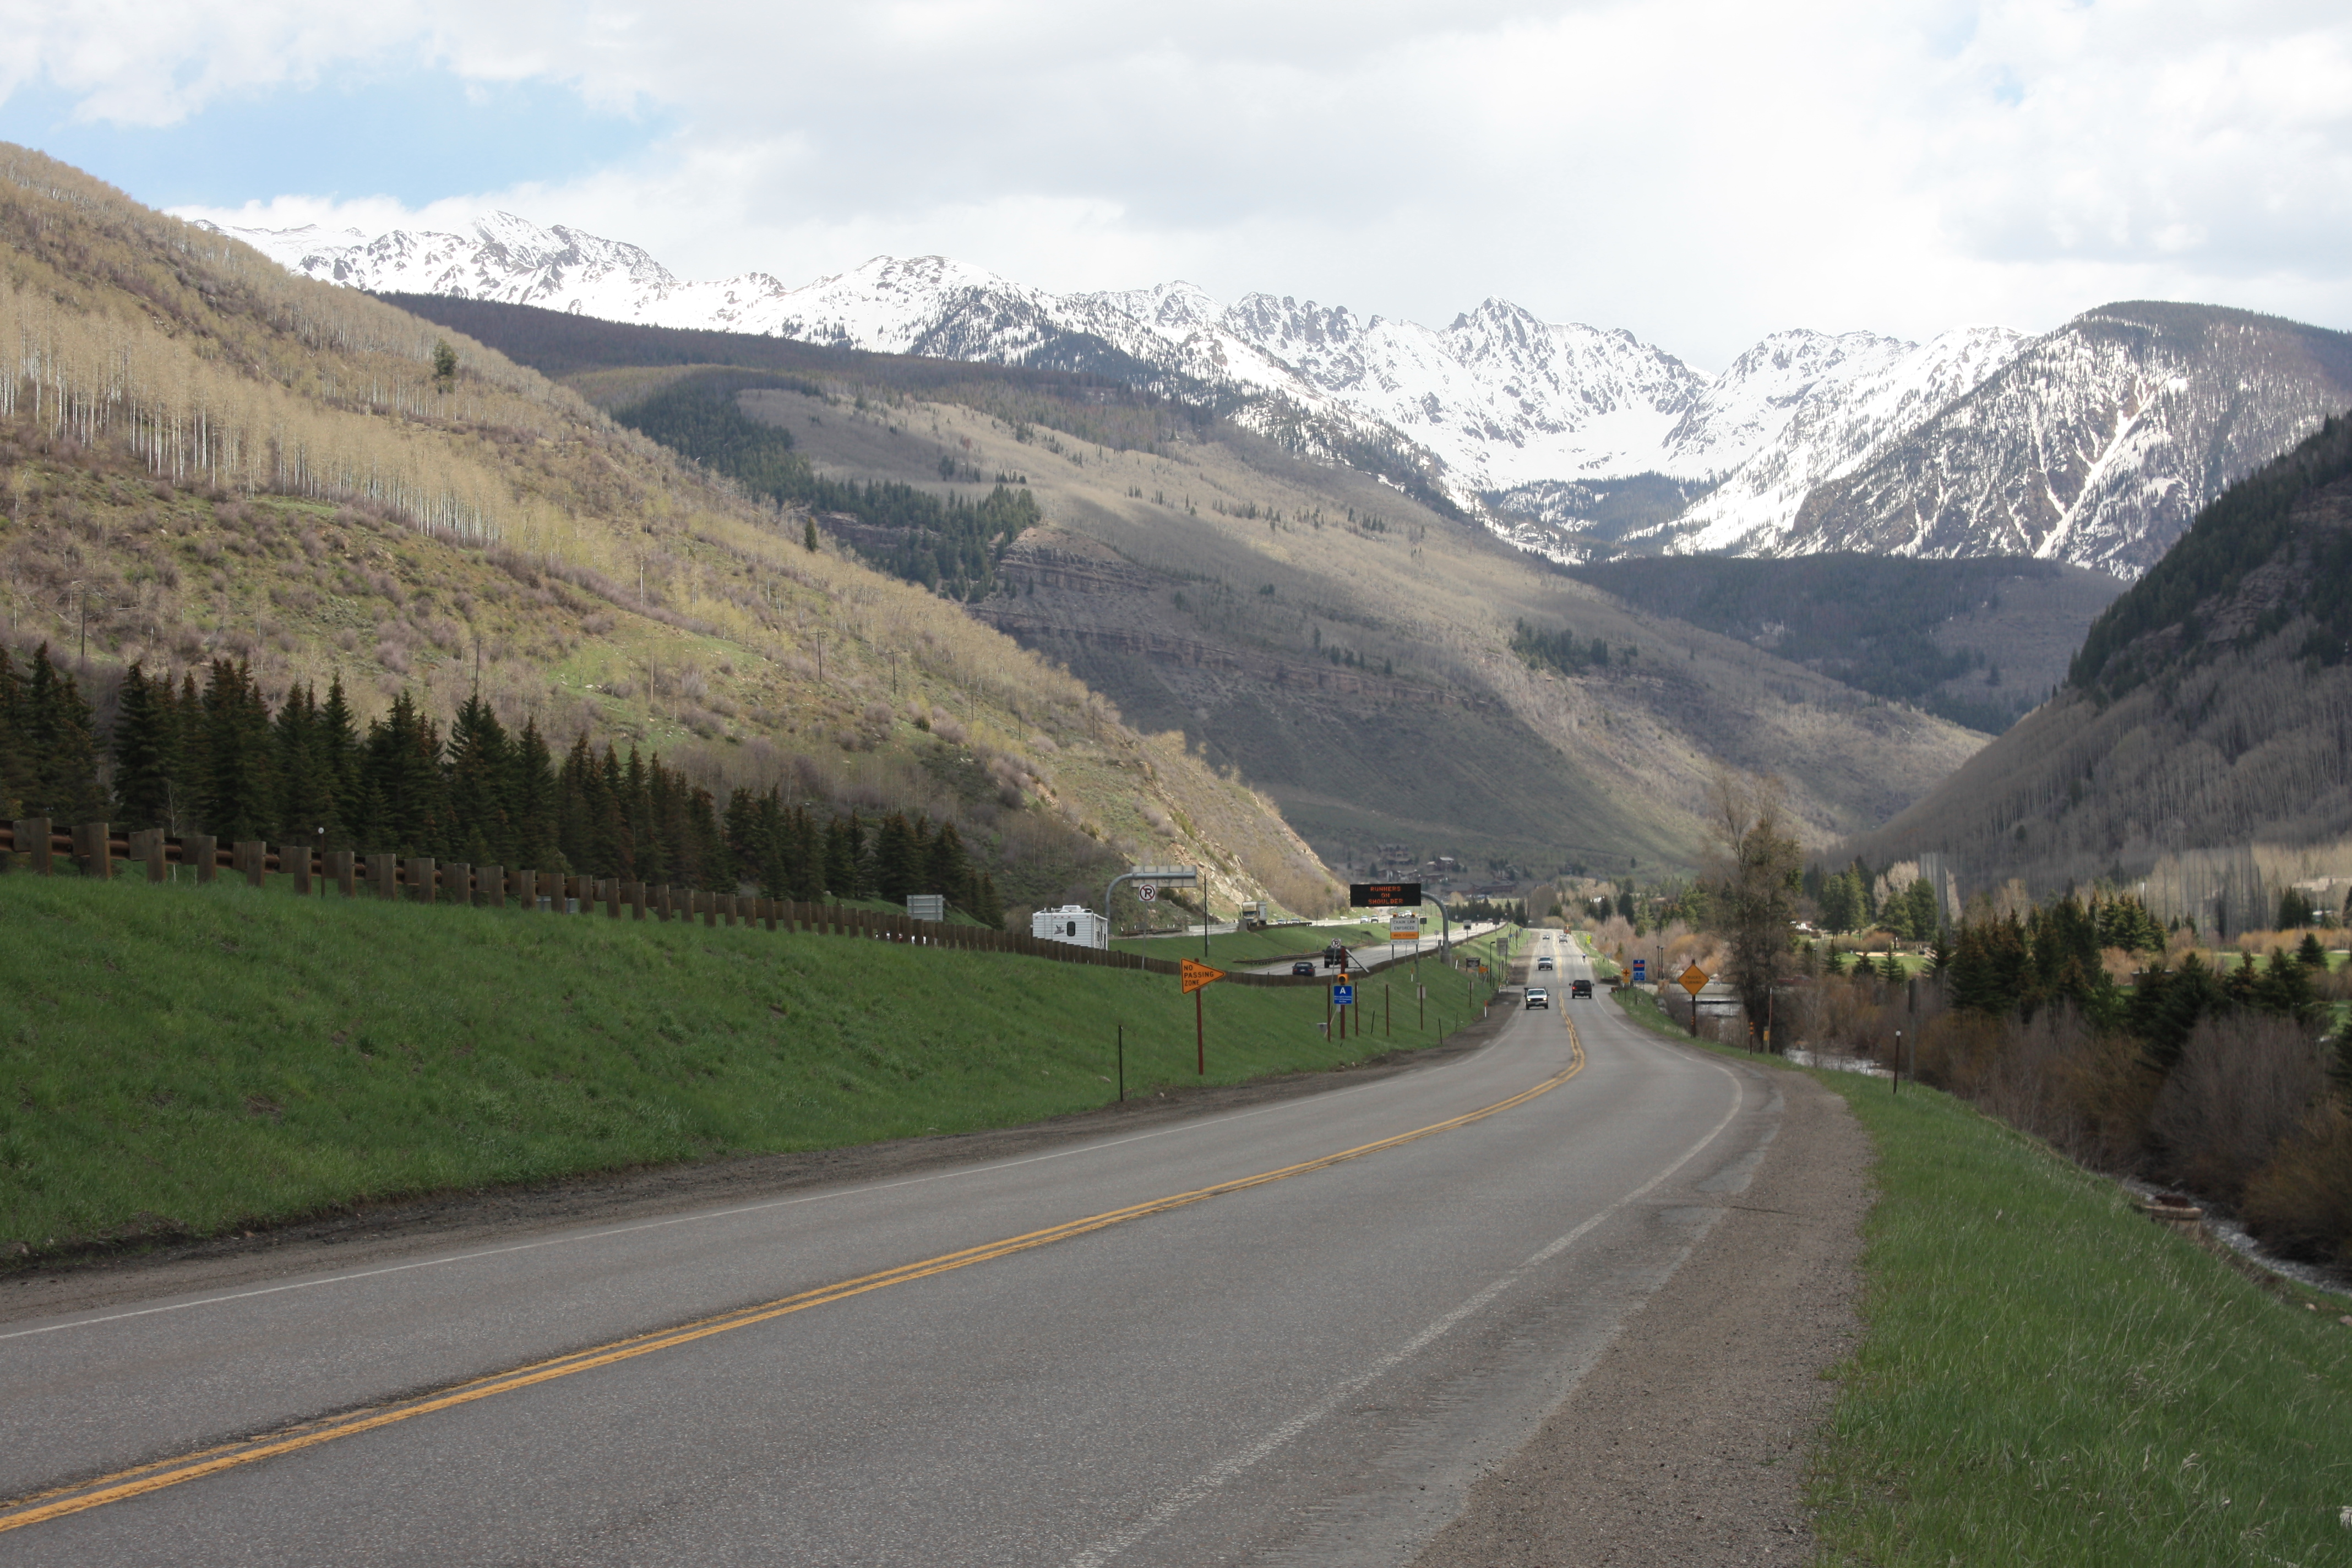 Road Trip: From Vail, AZ to Vail, CO